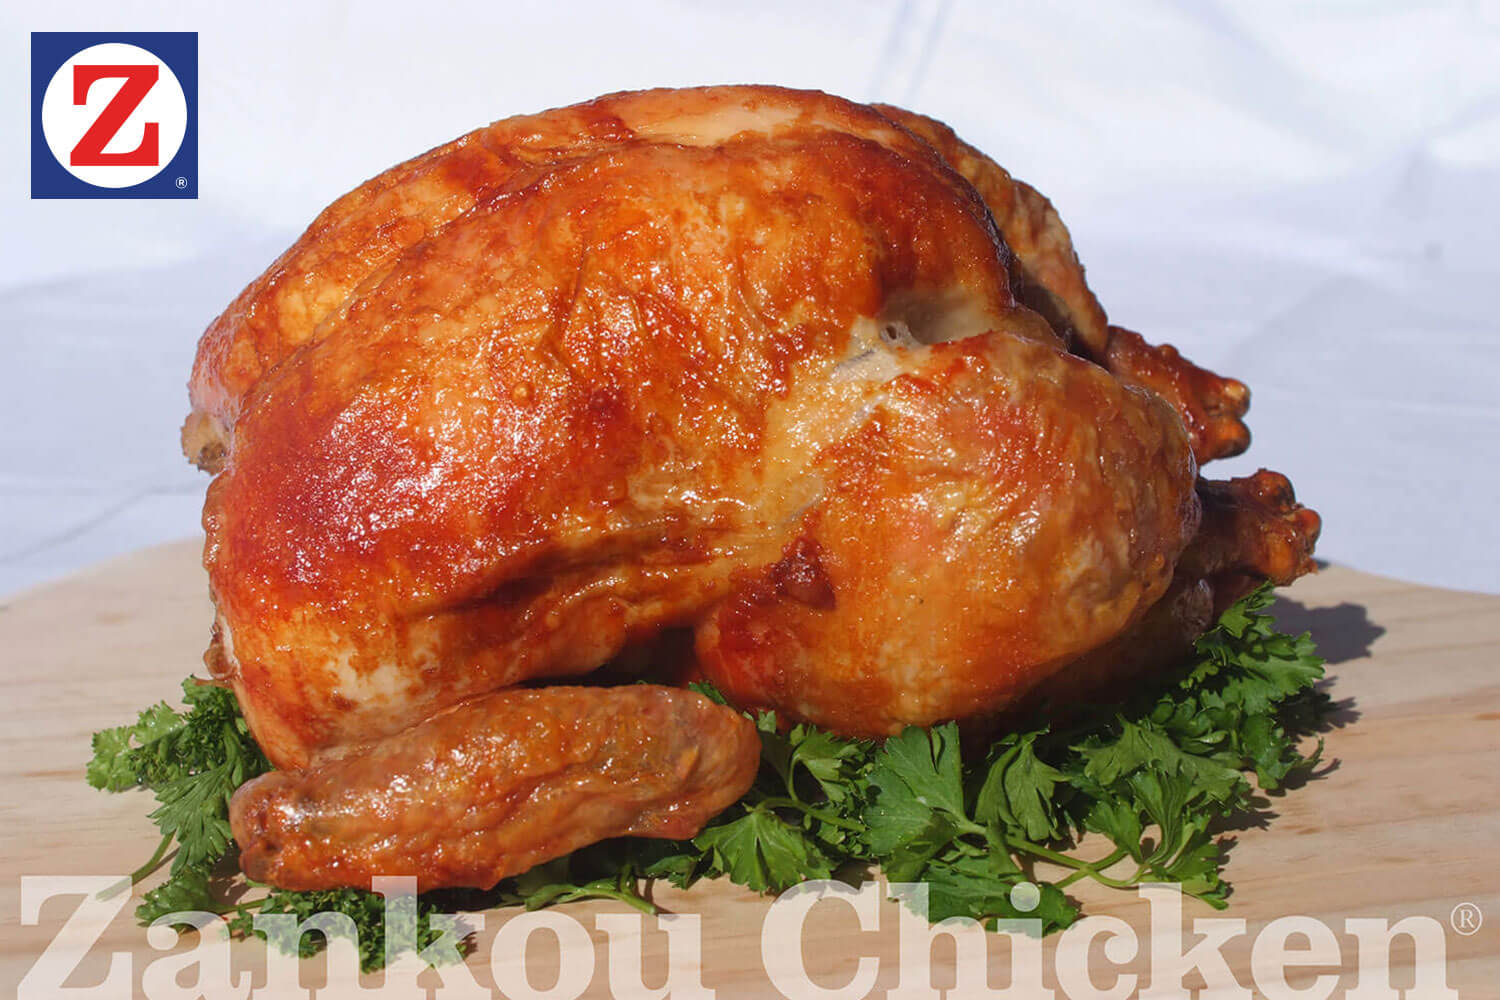 Zankou Chicken's famous whole roasted chicken on a bed of parsley